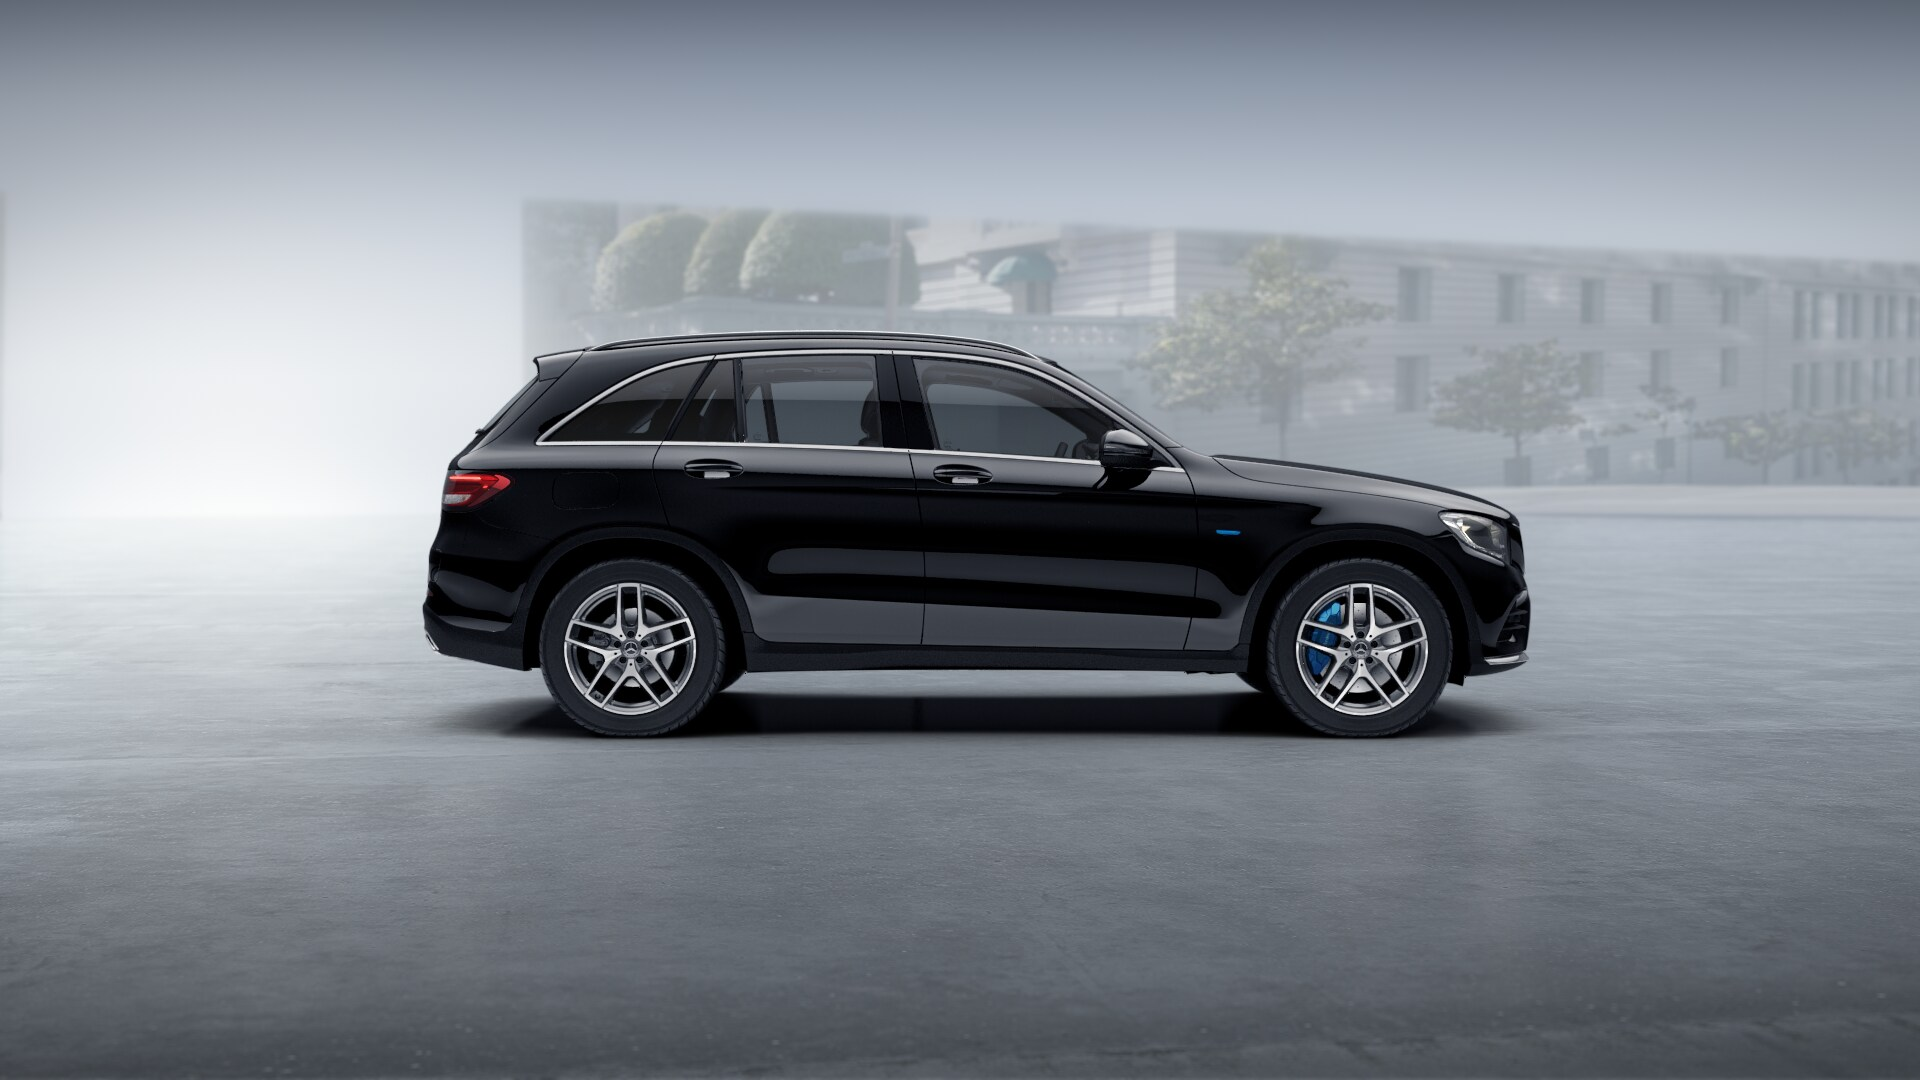 1066d1489066980-wheel-size-glc-glc-19 Interesting Info About Glc forum